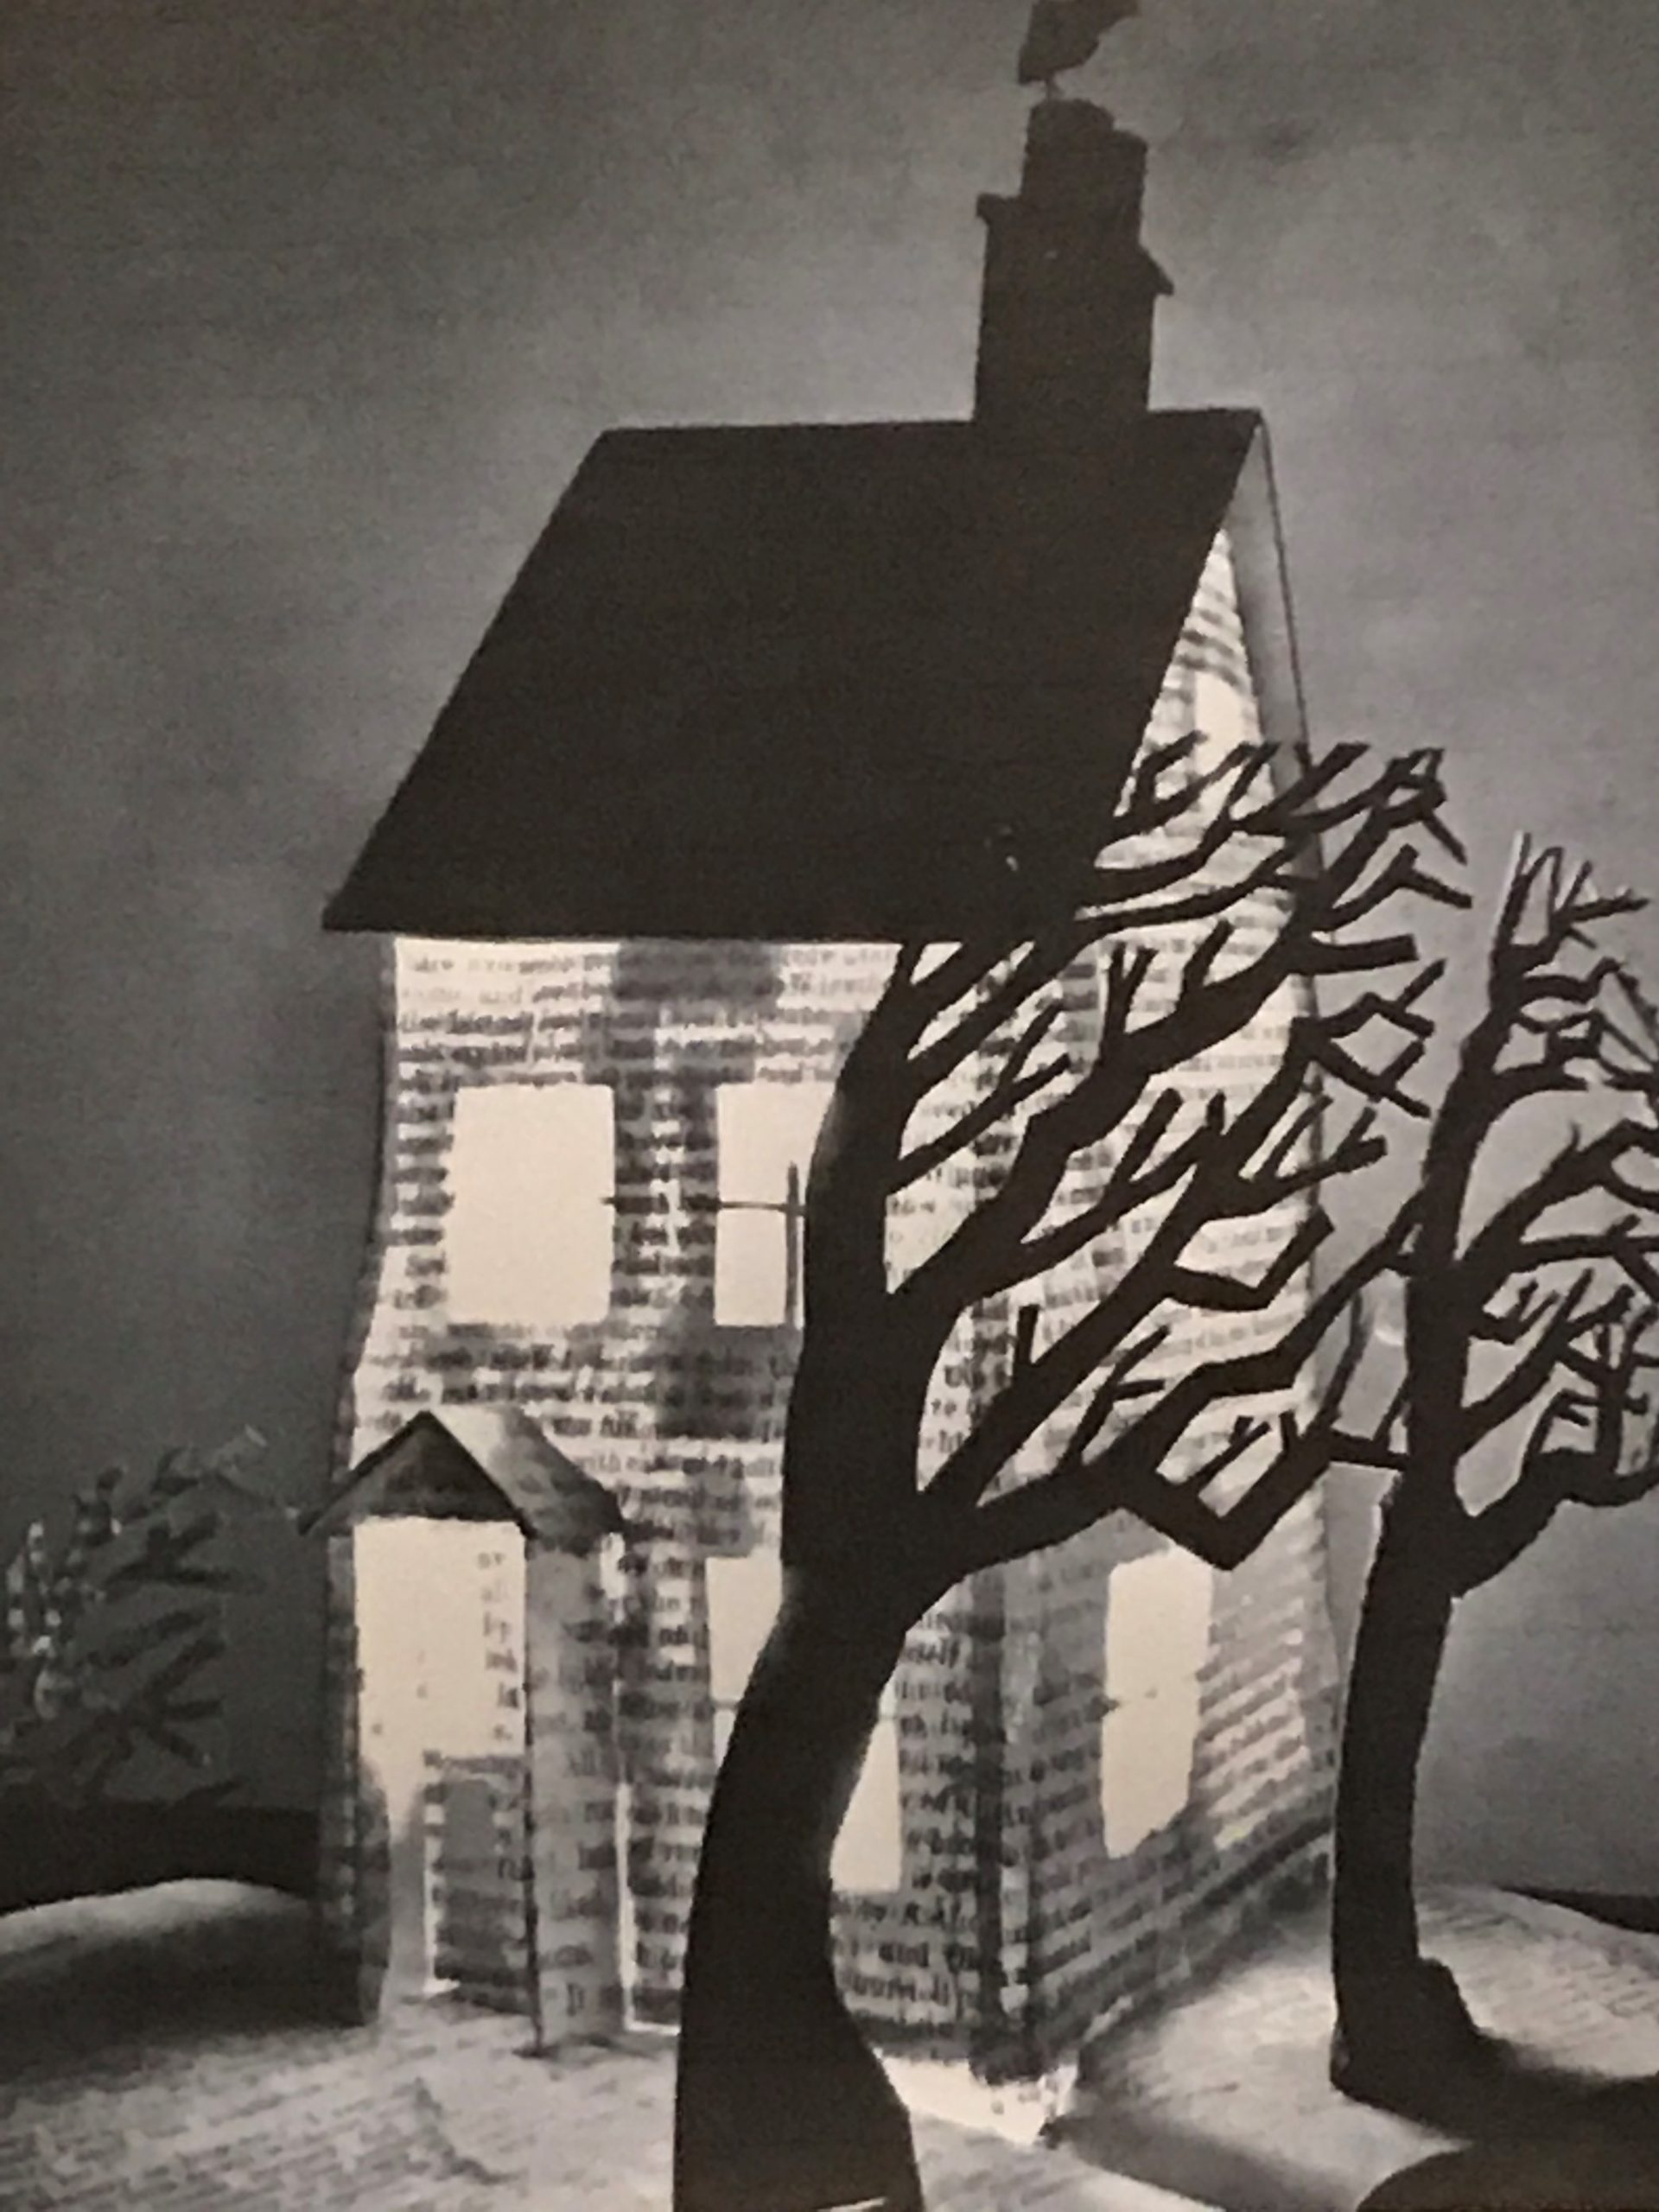 Photo of a black and white collage showing a house and trees.